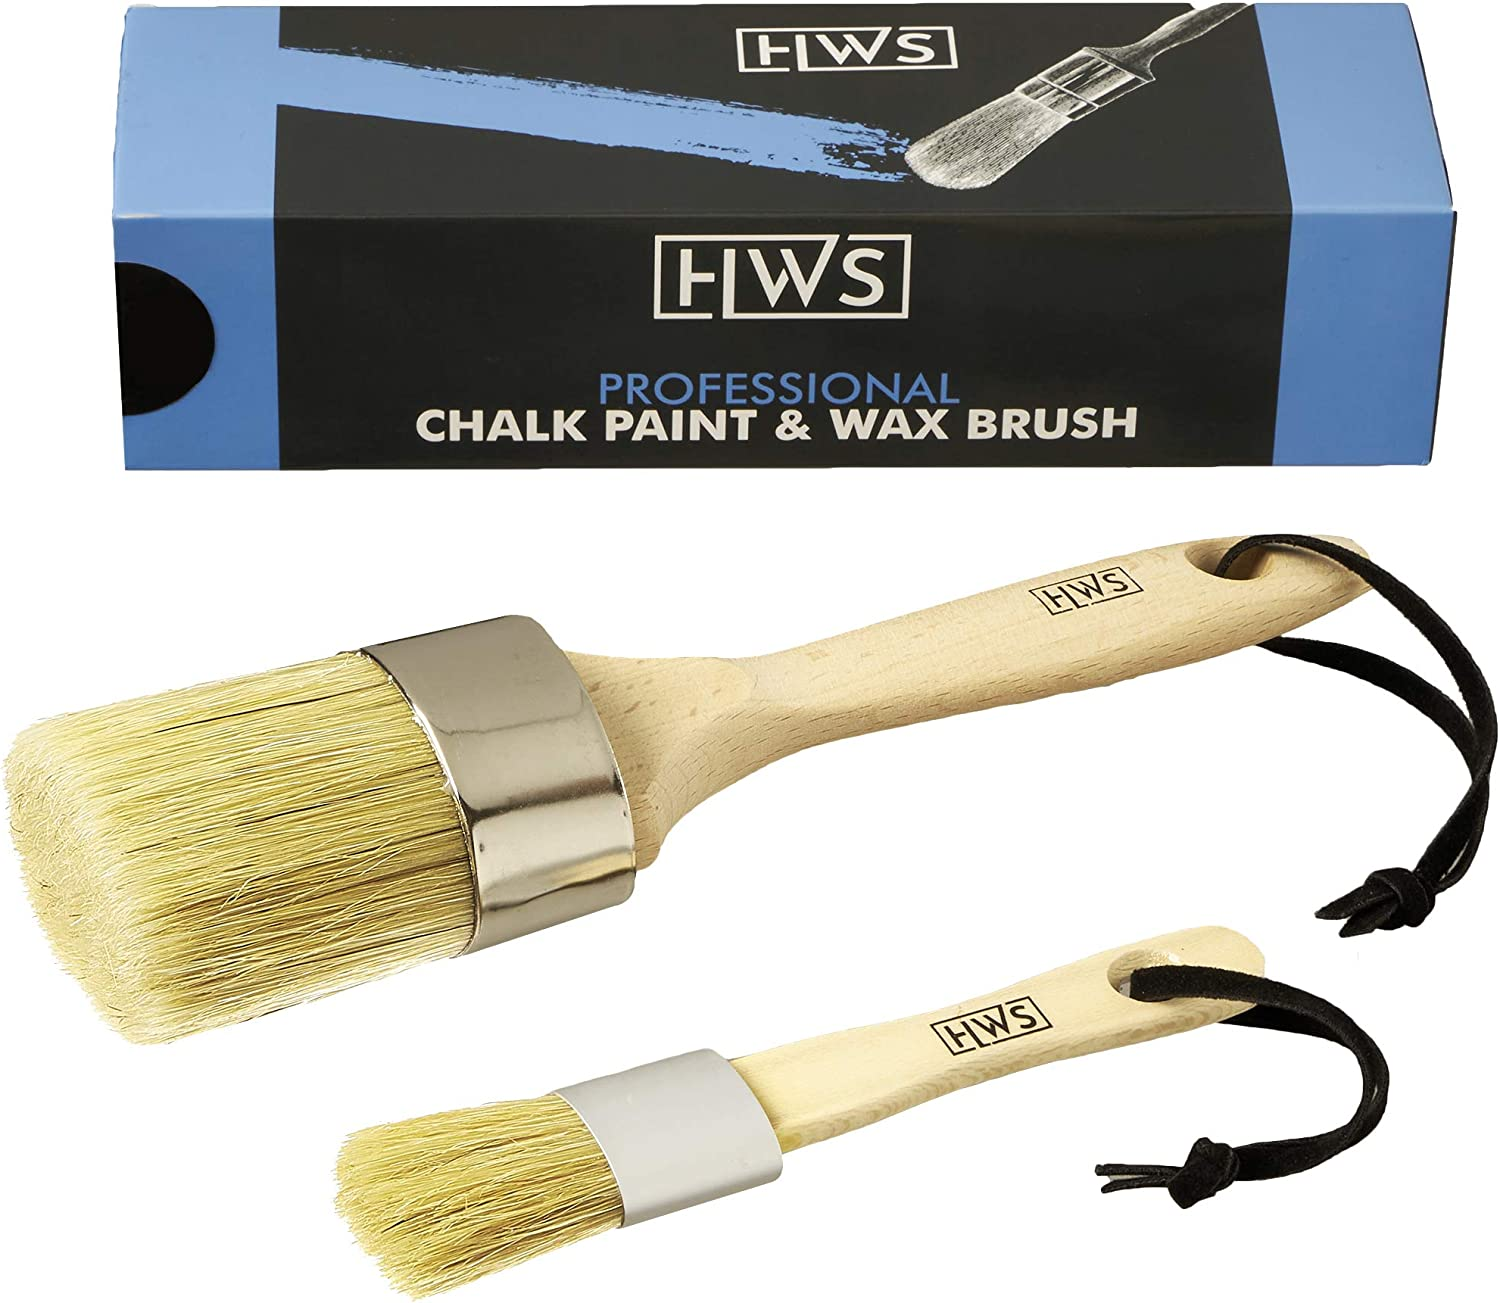 Professional Chalk Paint Brush and Wax Brush 2-Piece Set for Painting DIY Arts, Crafts, Furniture, and Hobby Projects on Wood, Sidewalks, Stencils or Custom Home Decor, Reusable